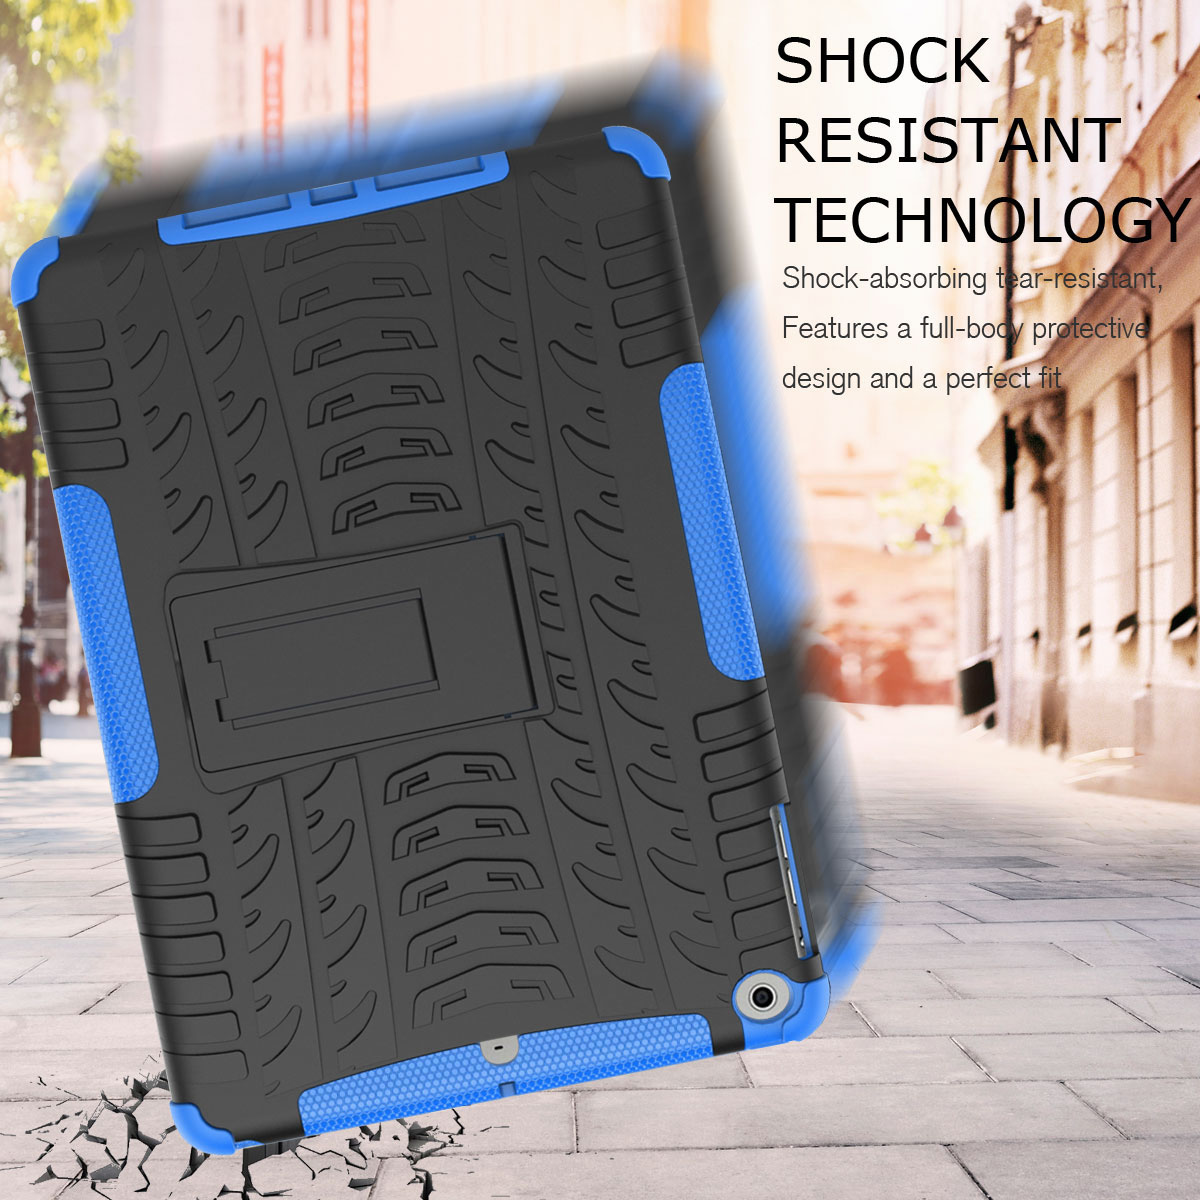 Hybrid-Rubber-Shockproof-Tough-Case-Cover-For-Apple-iPad-9-7-Air-Pro-Mini-1234 thumbnail 24